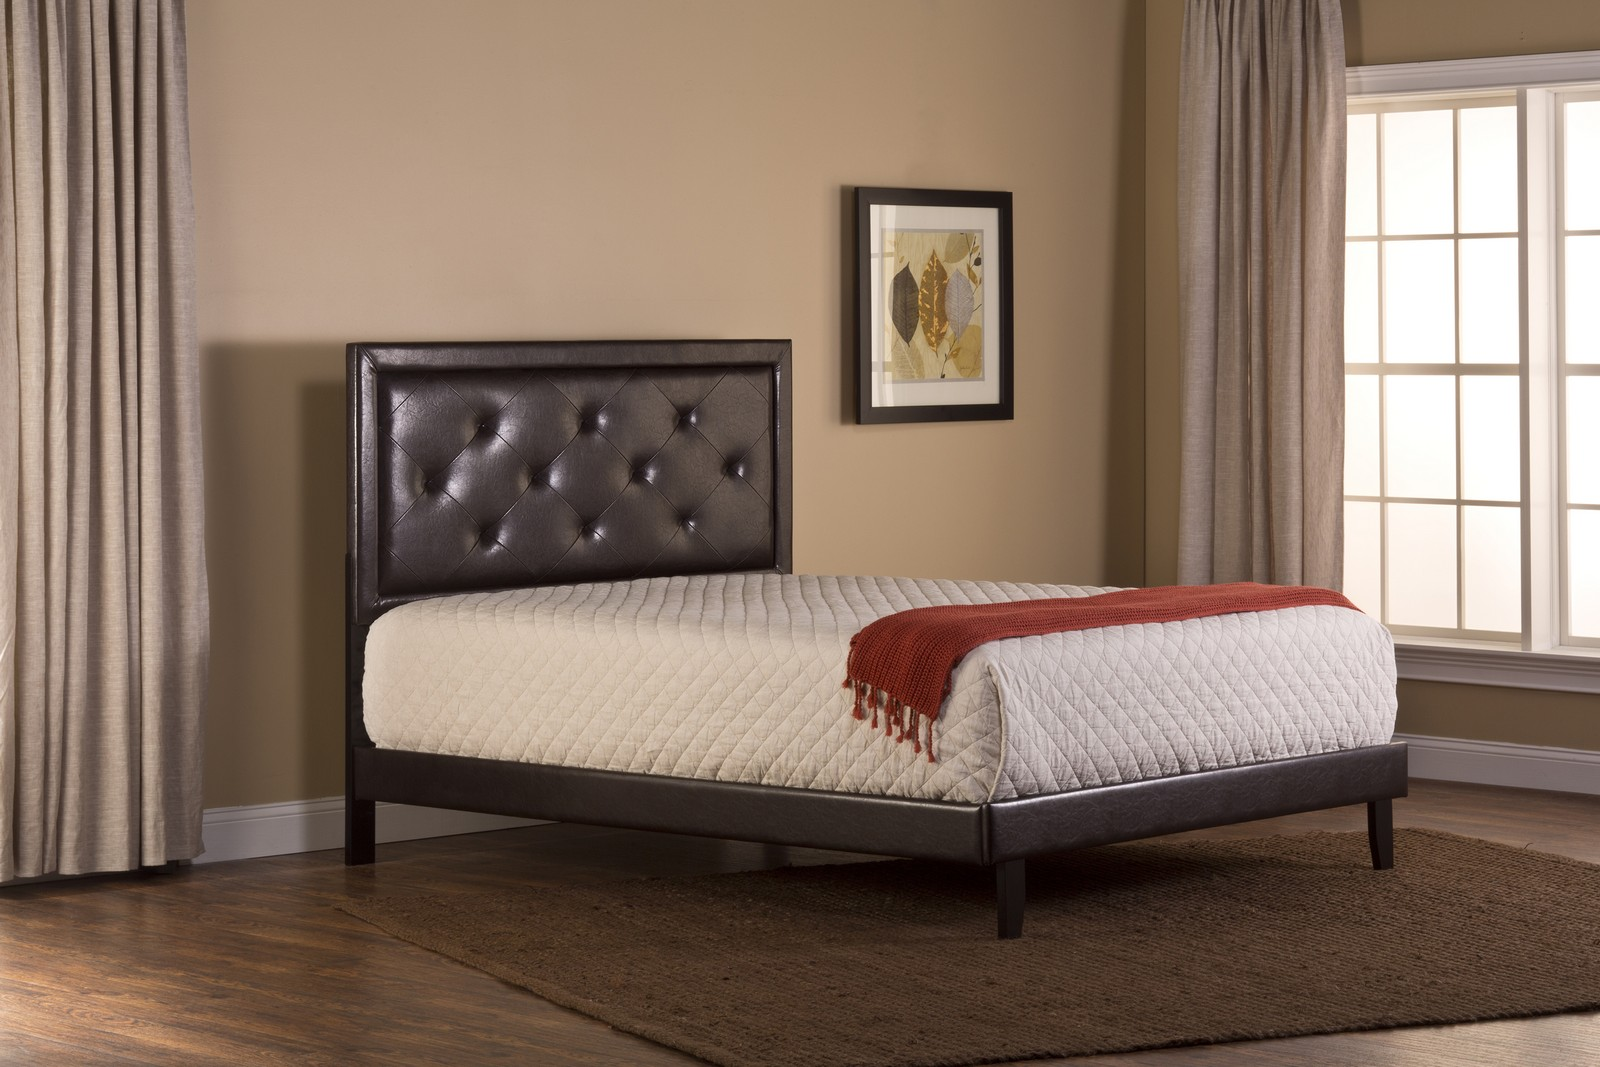 Hillsdale Becker Bed - Brown Faux Leather